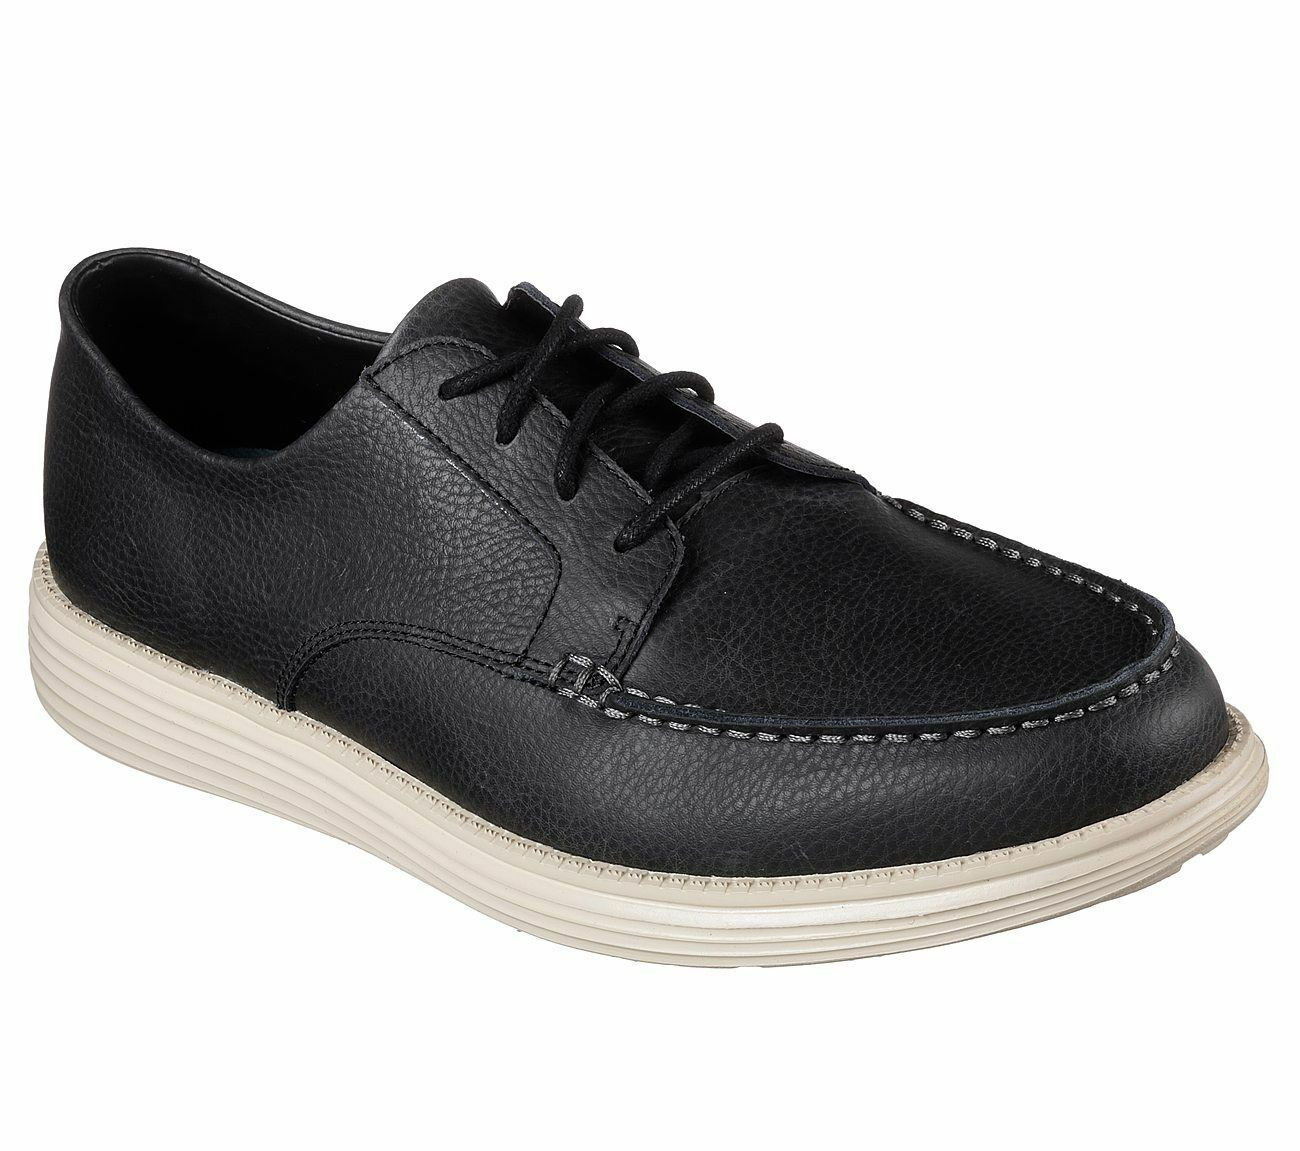 SKECHERS Men's Relaxed Fit Status-Lerado Casual Shoes in Black